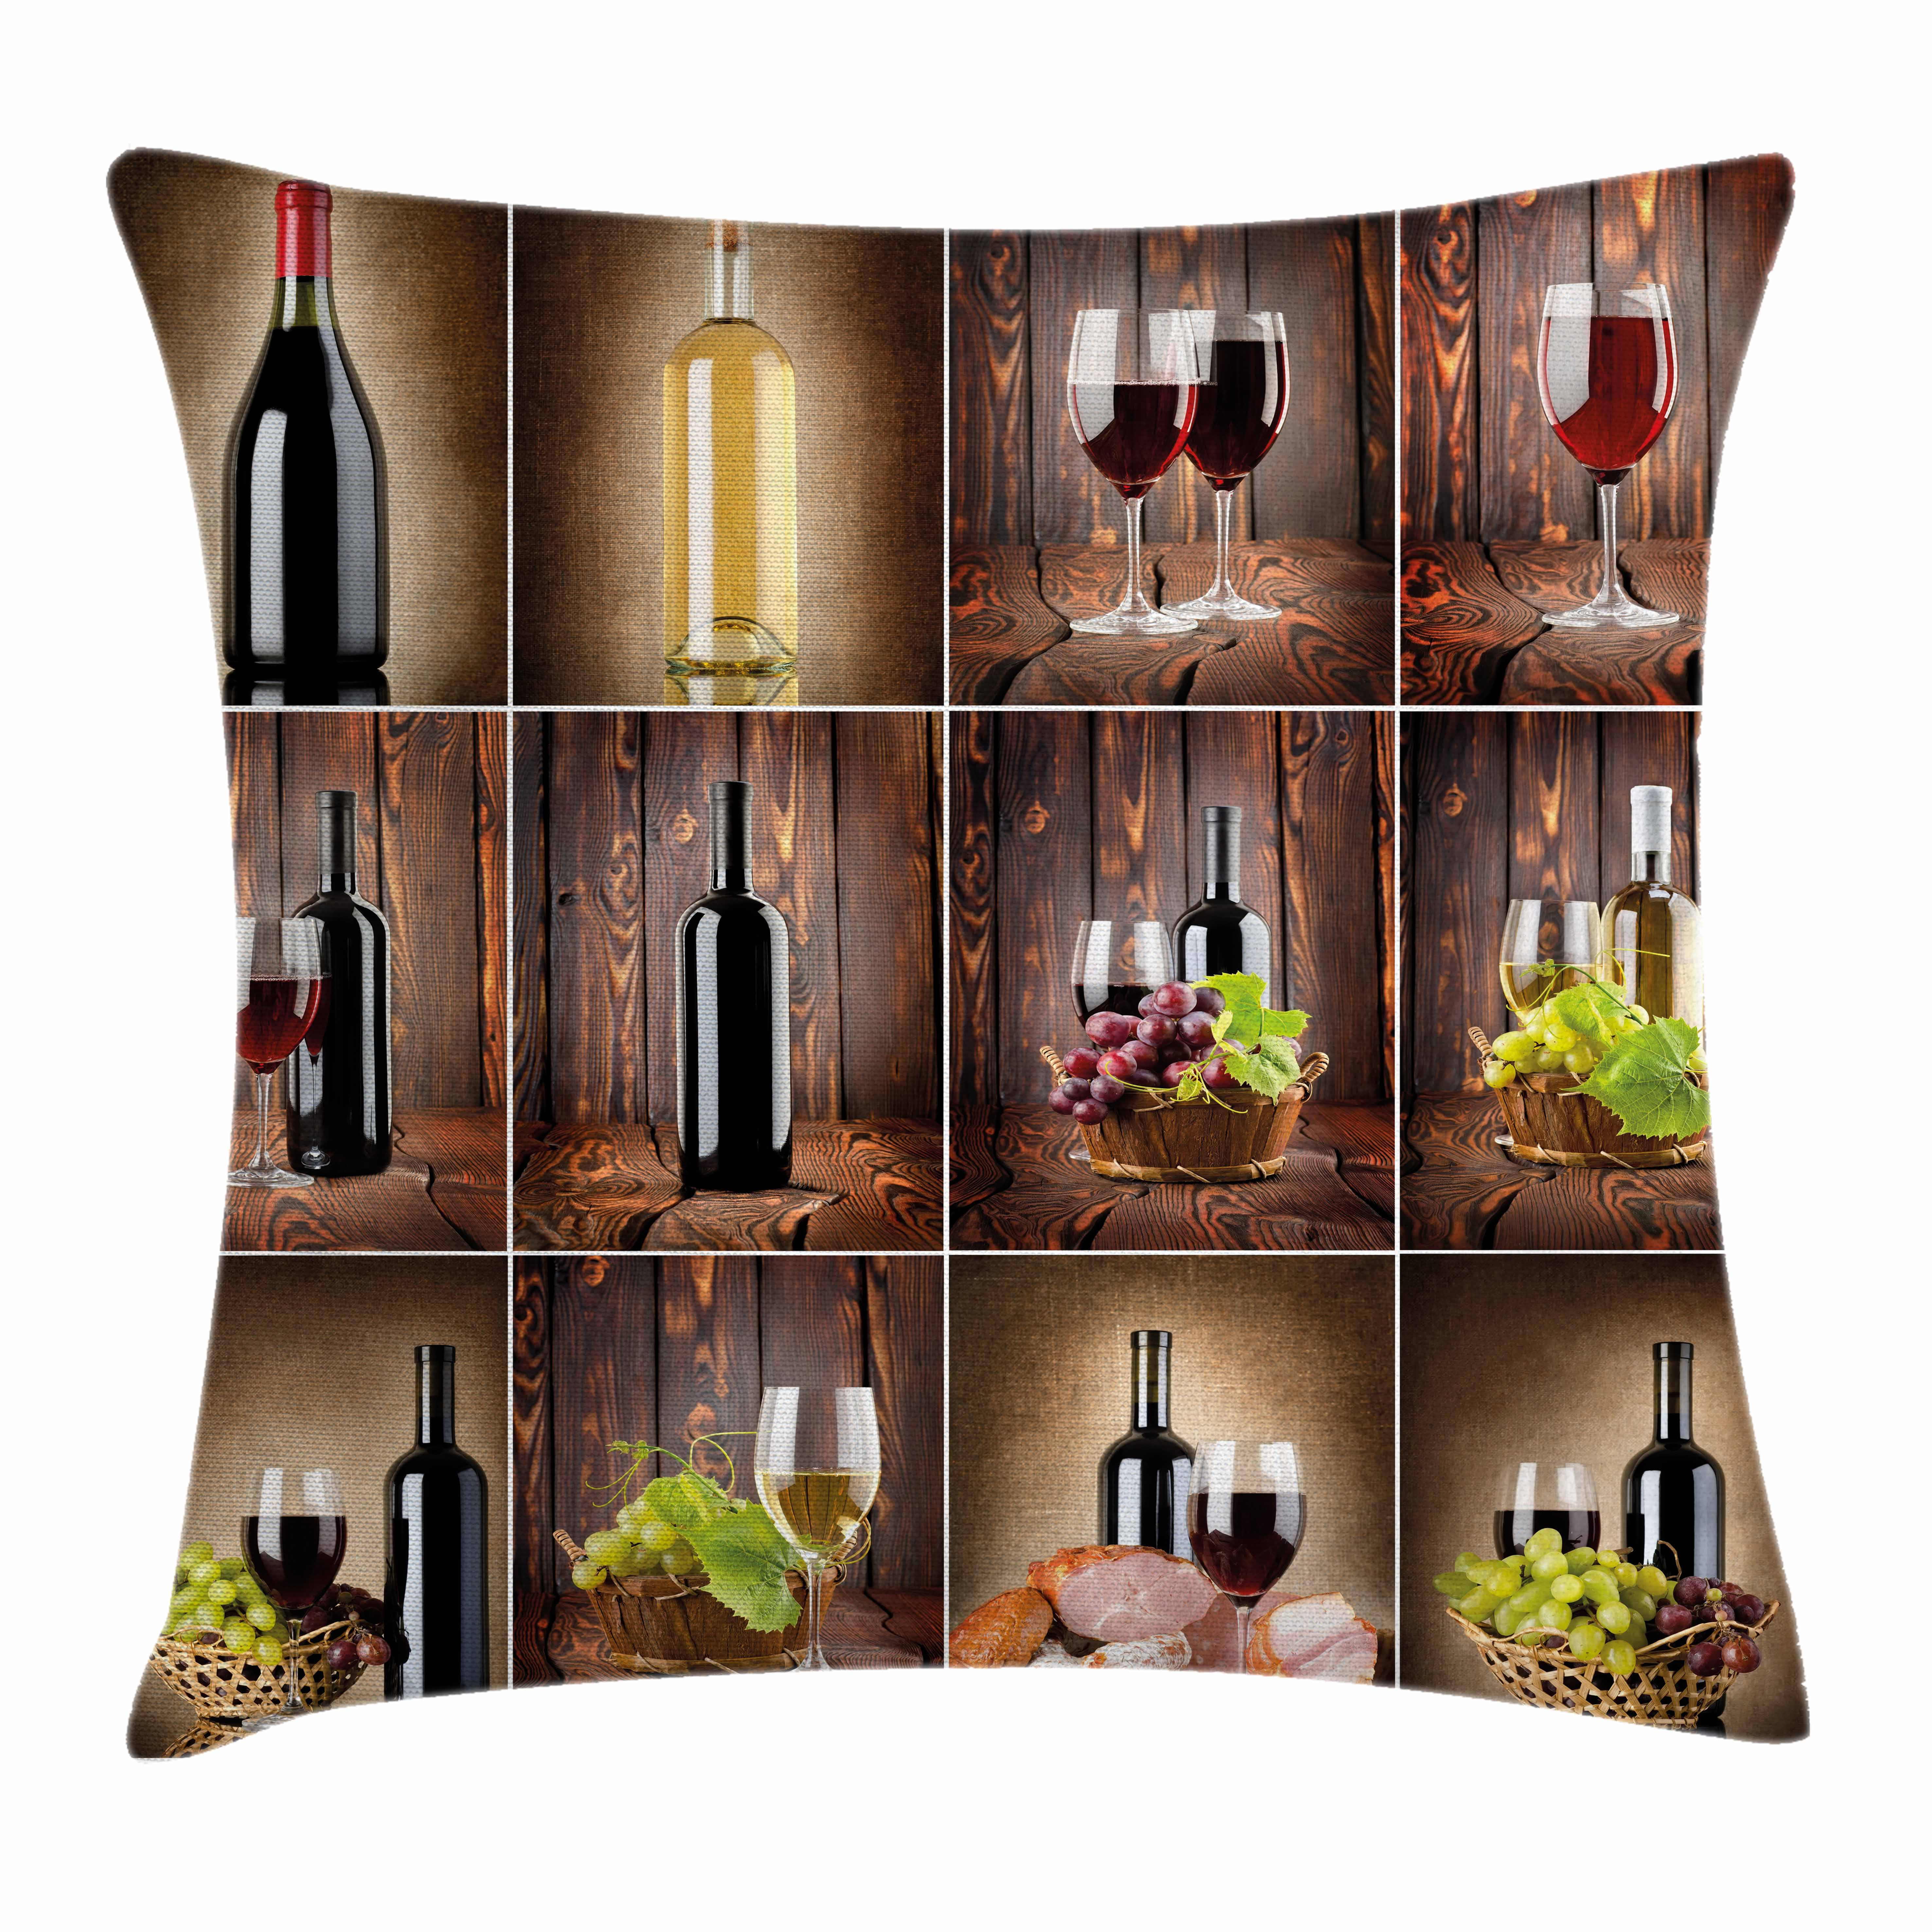 Wine Throw Pillow Cushion Cover, Wine Themed Collage on Wooden Backdrop with Grapes and Meat Rustic Country Drink, Decorative Square Accent Pillow Case, 16 X 16 Inches, Brown Black Red, by Ambesonne